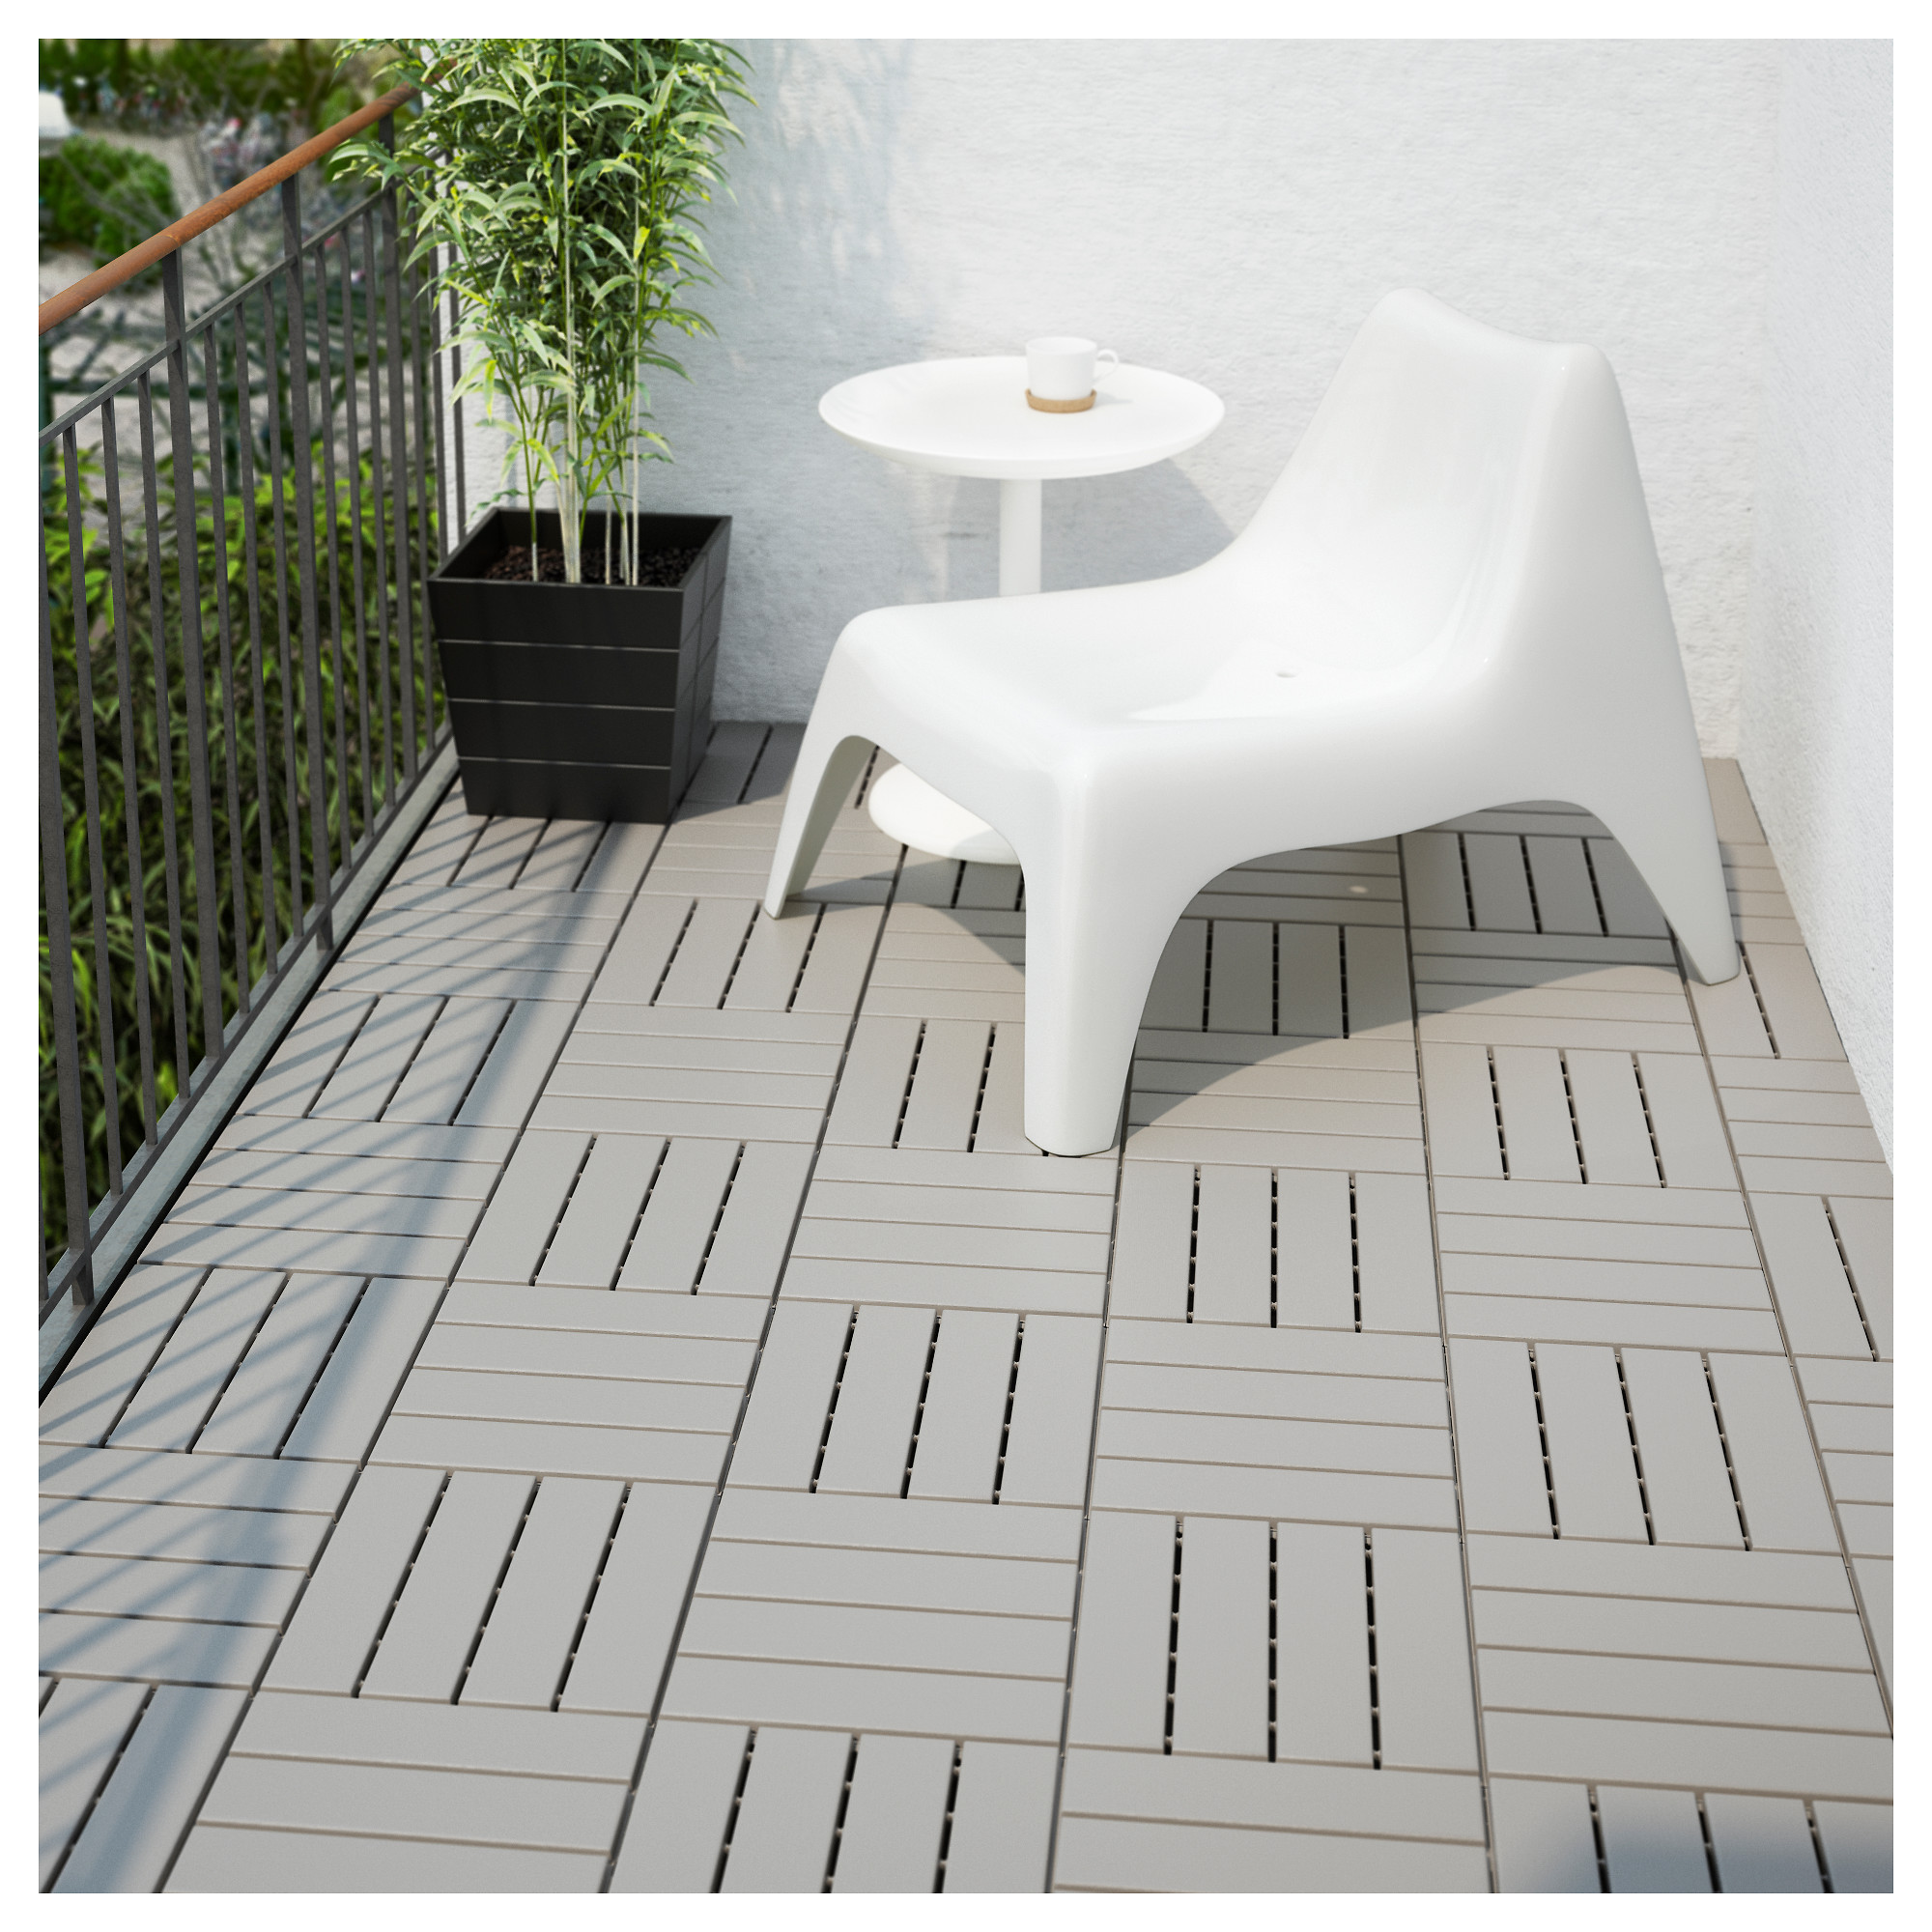 RUNNEN Decking, Outdoor